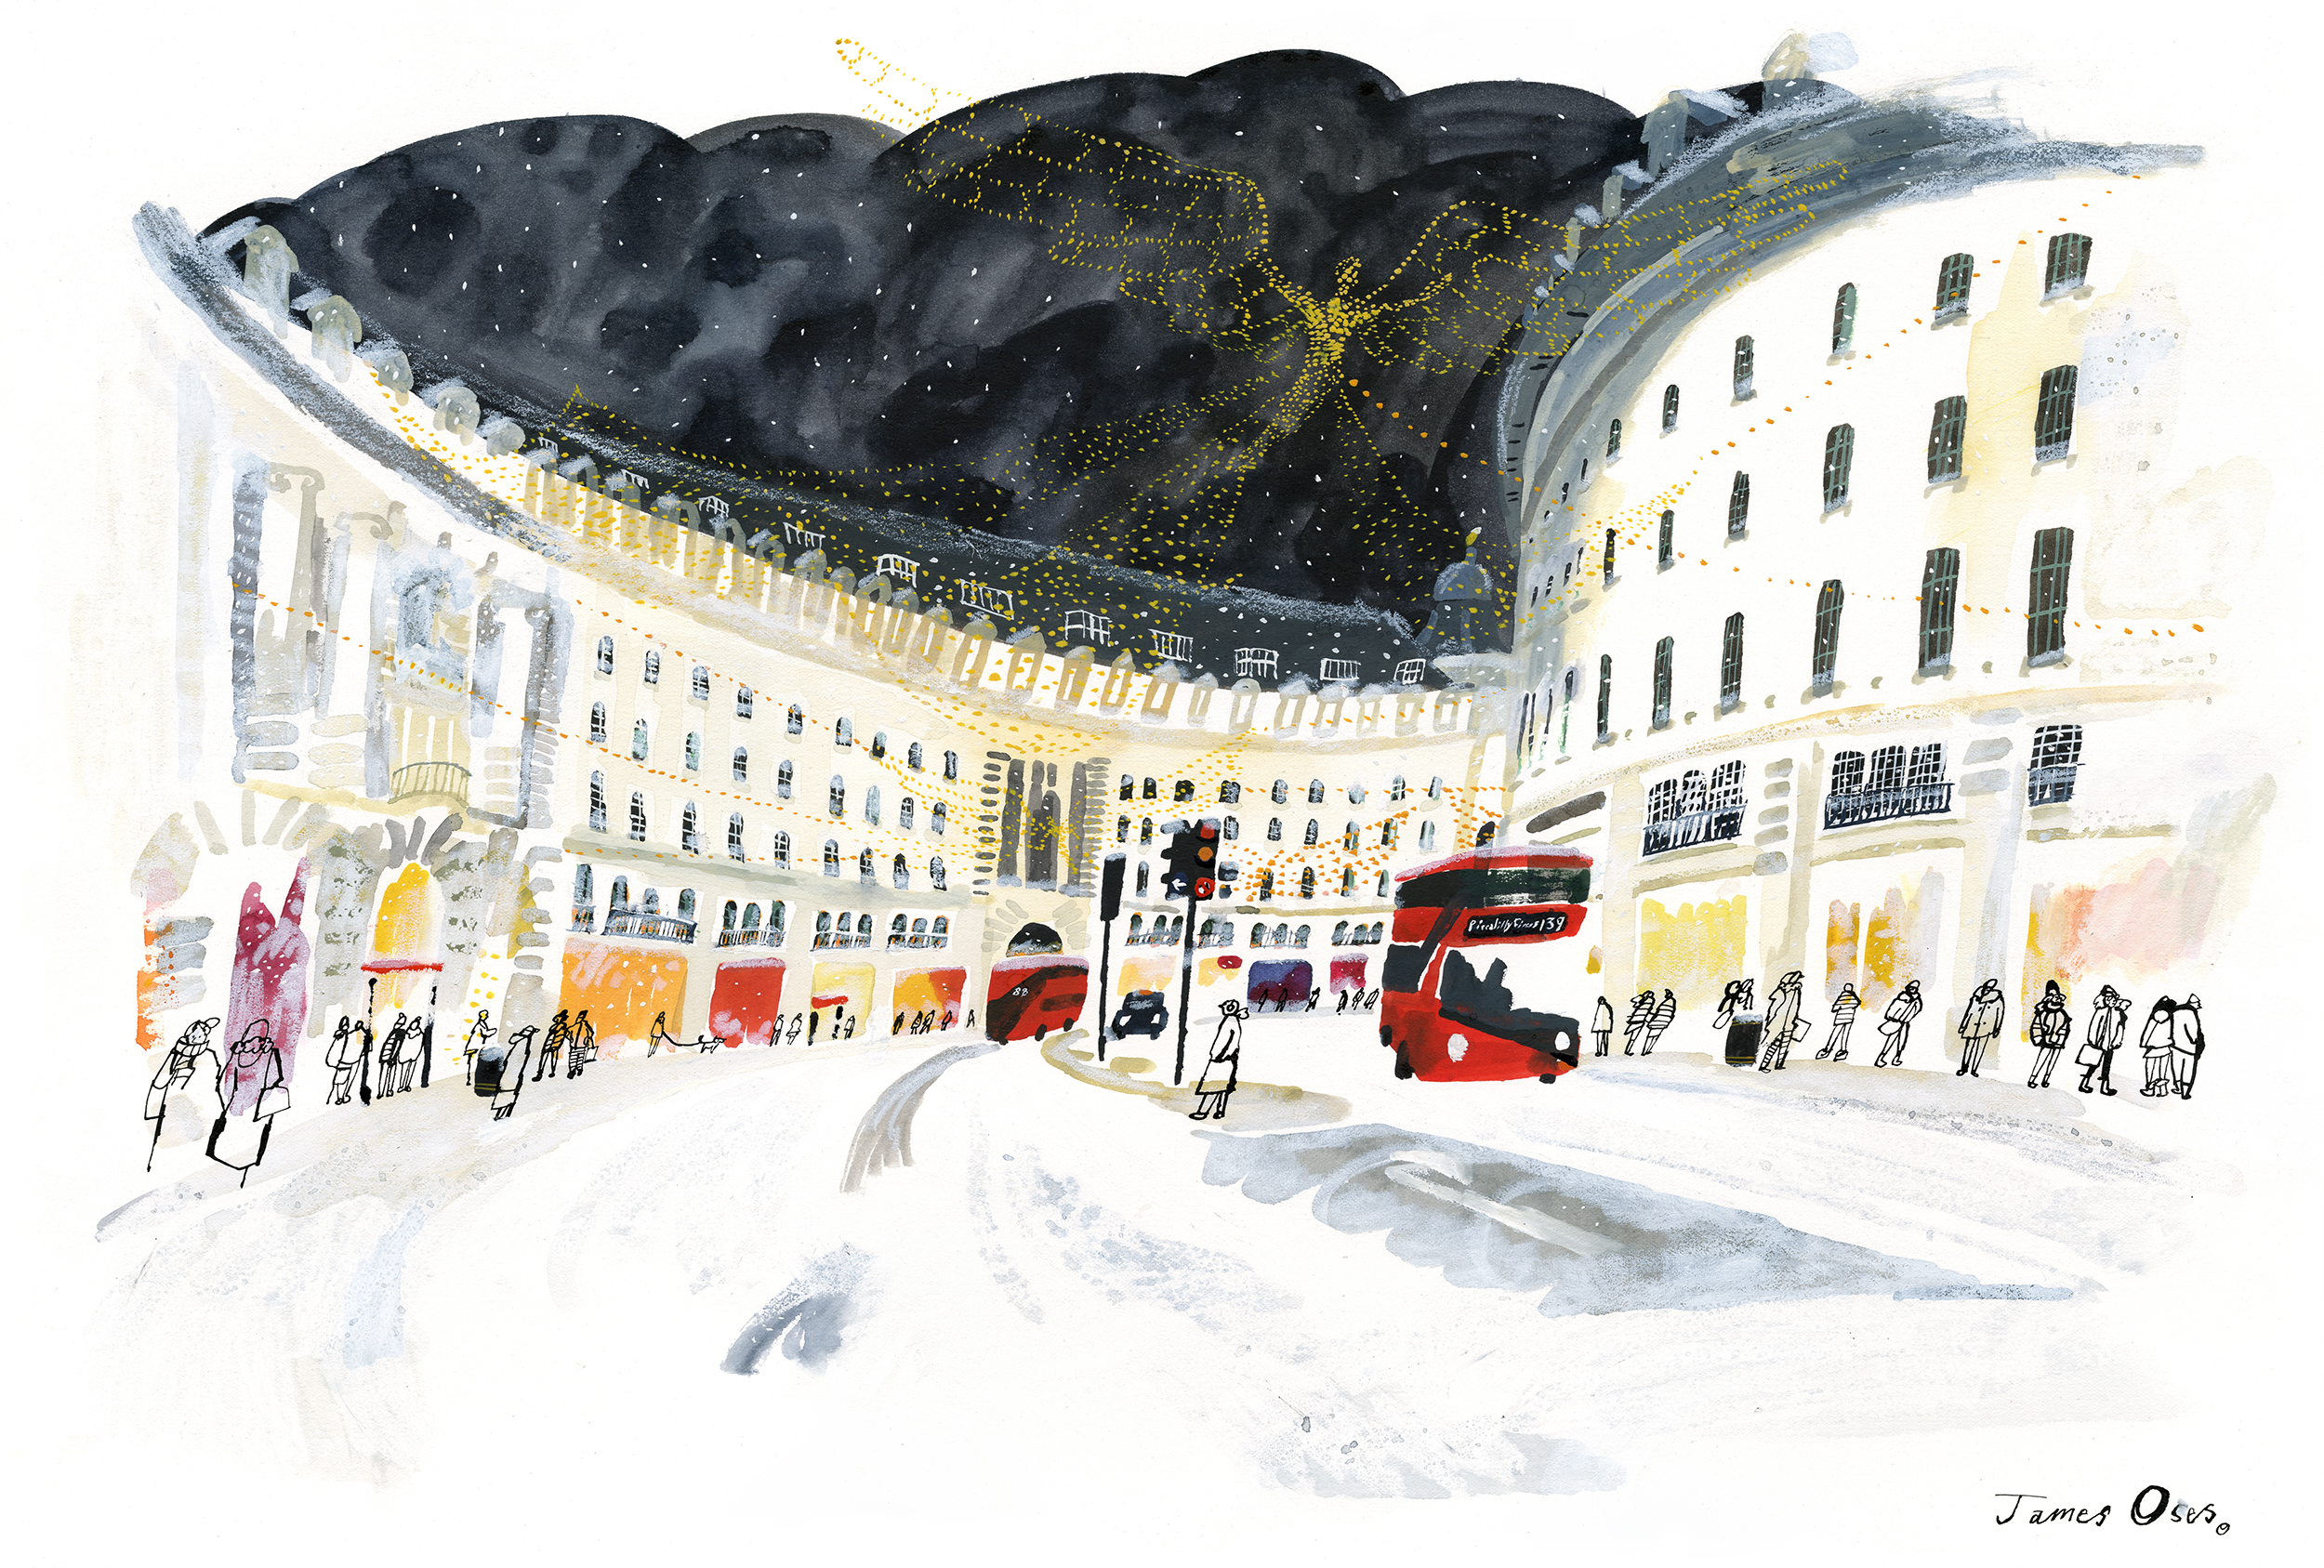 Regent Street by James Oses